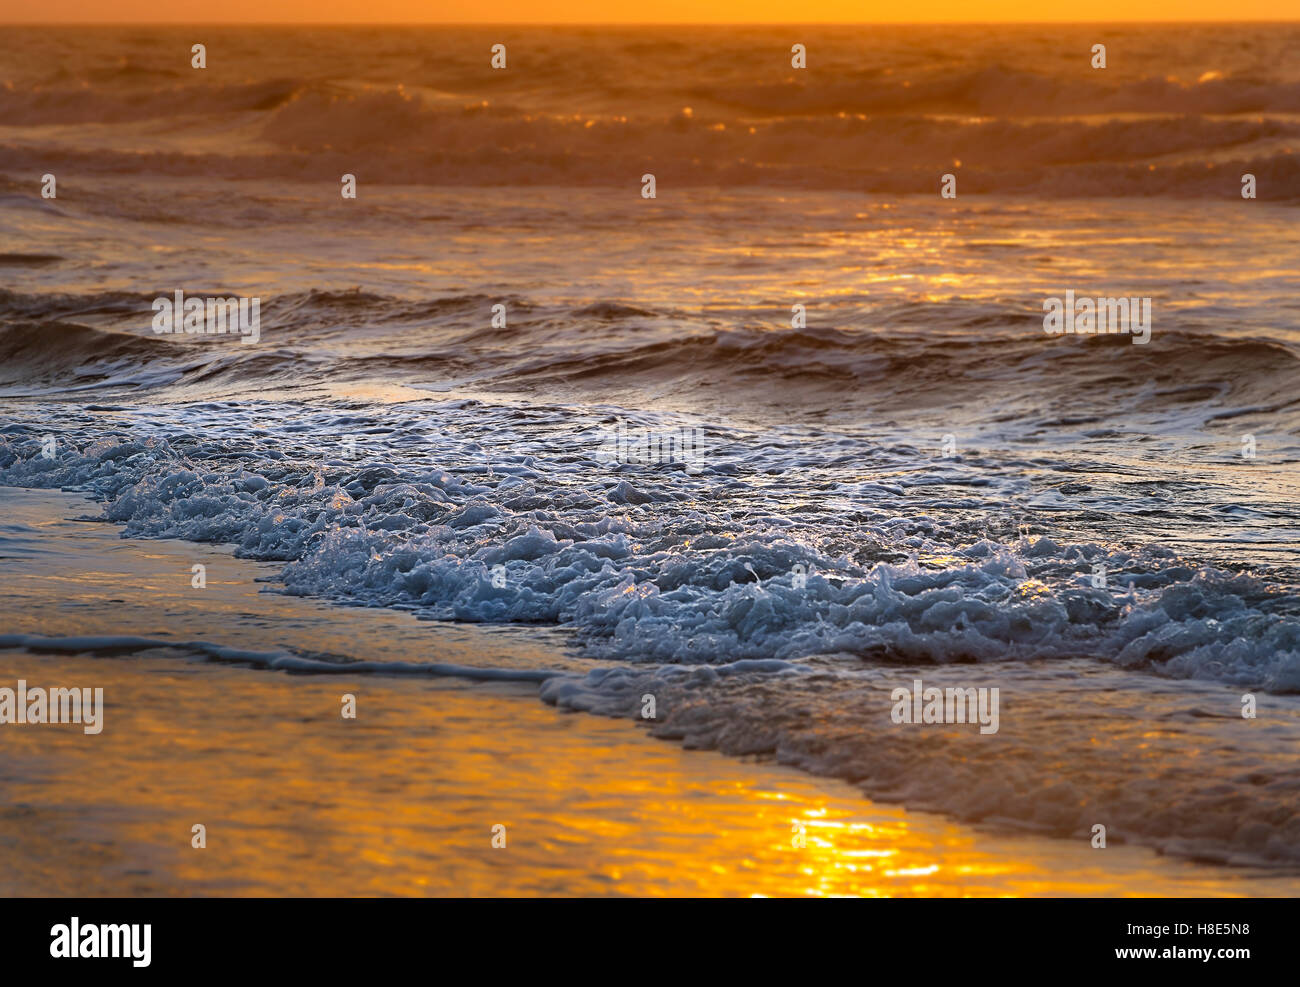 Artistic Sunrise With Waves - Stock Image